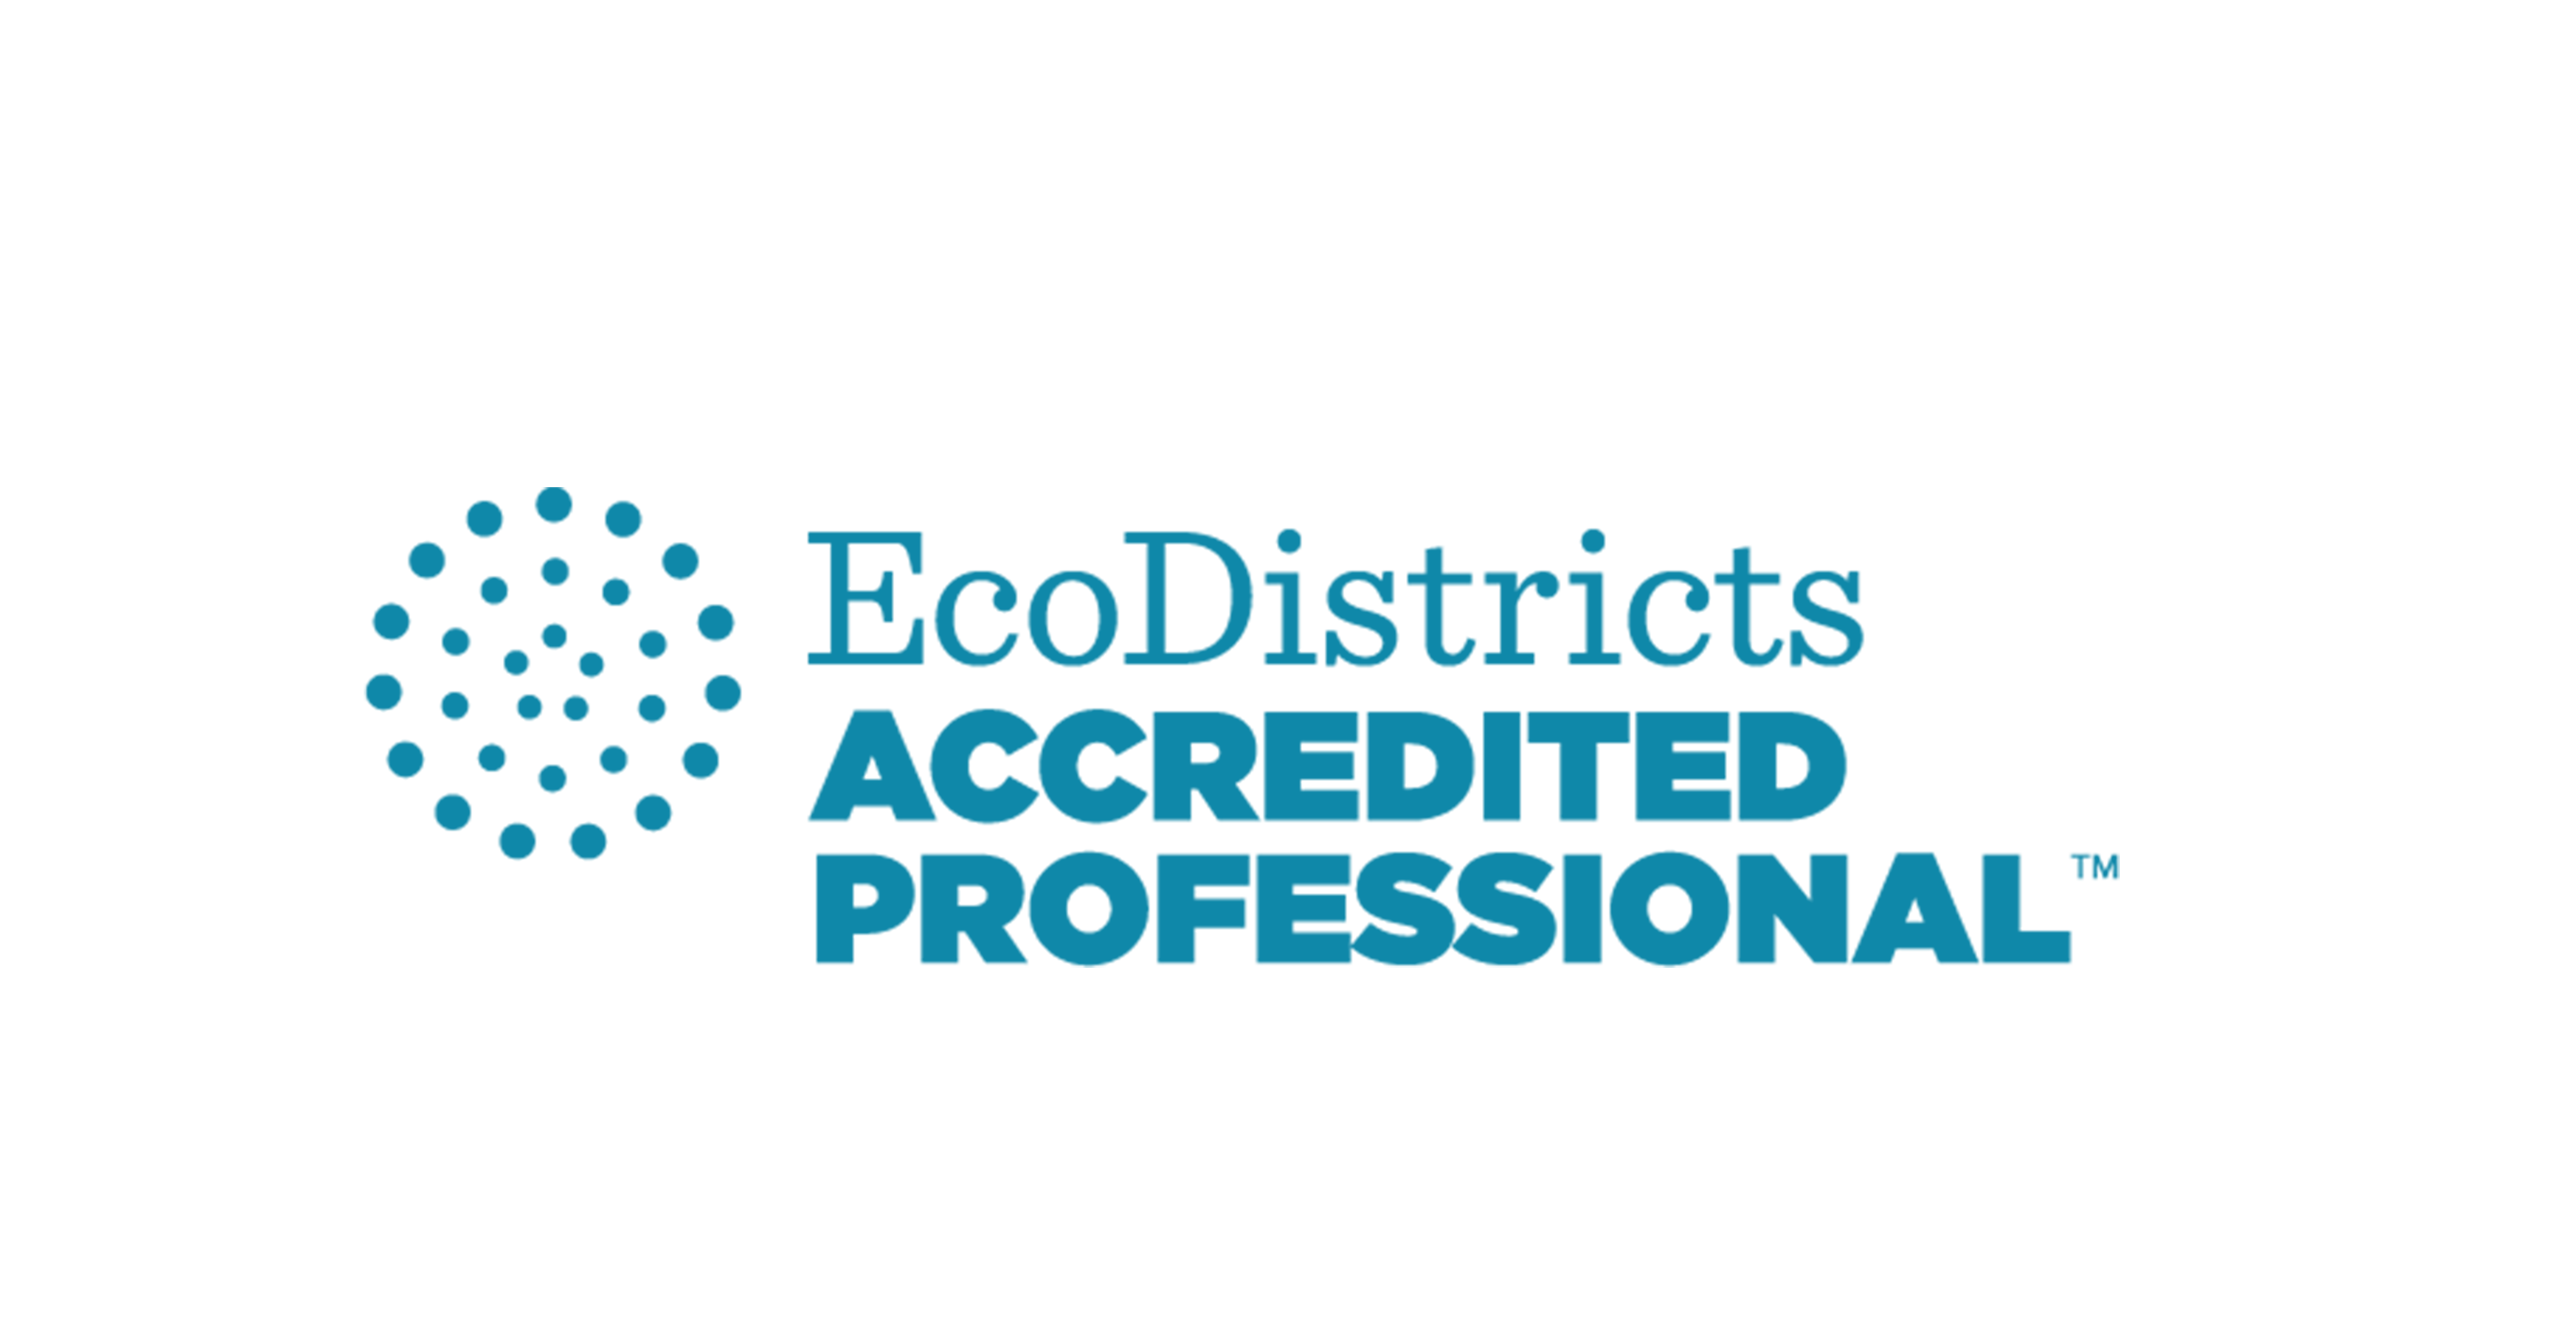 Ecodistrict copy